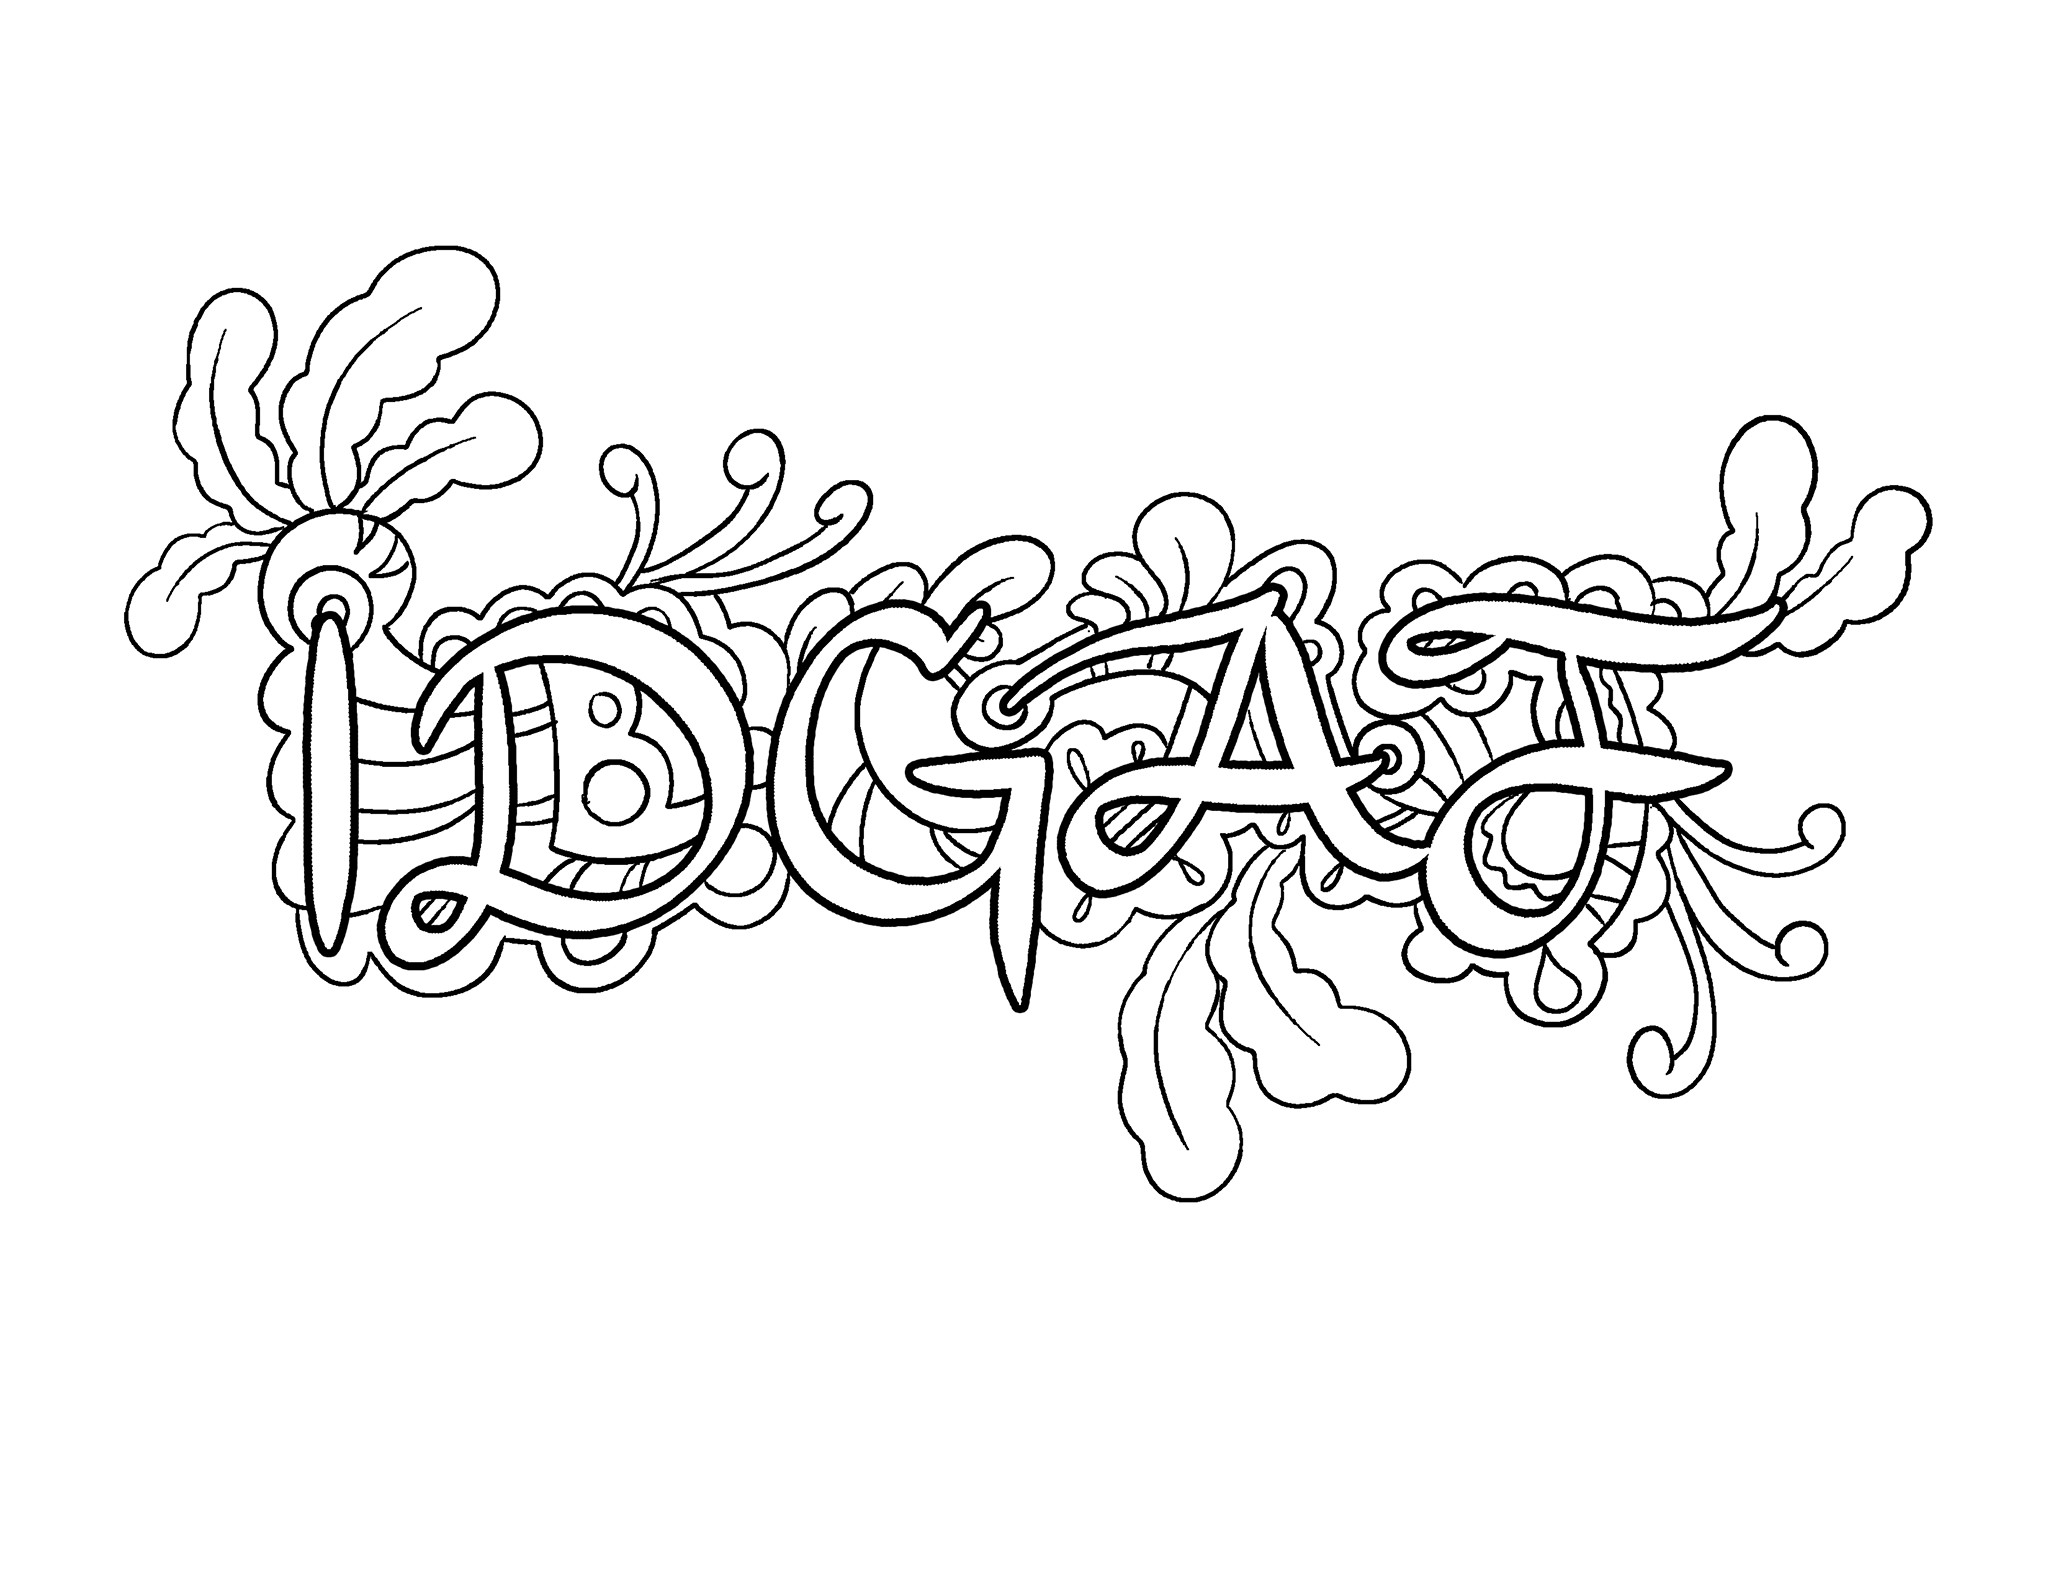 Best ideas about Free Swear Word Coloring Pages For Adults . Save or Pin Free Printable Coloring Pages For Adults Swear Words Now.